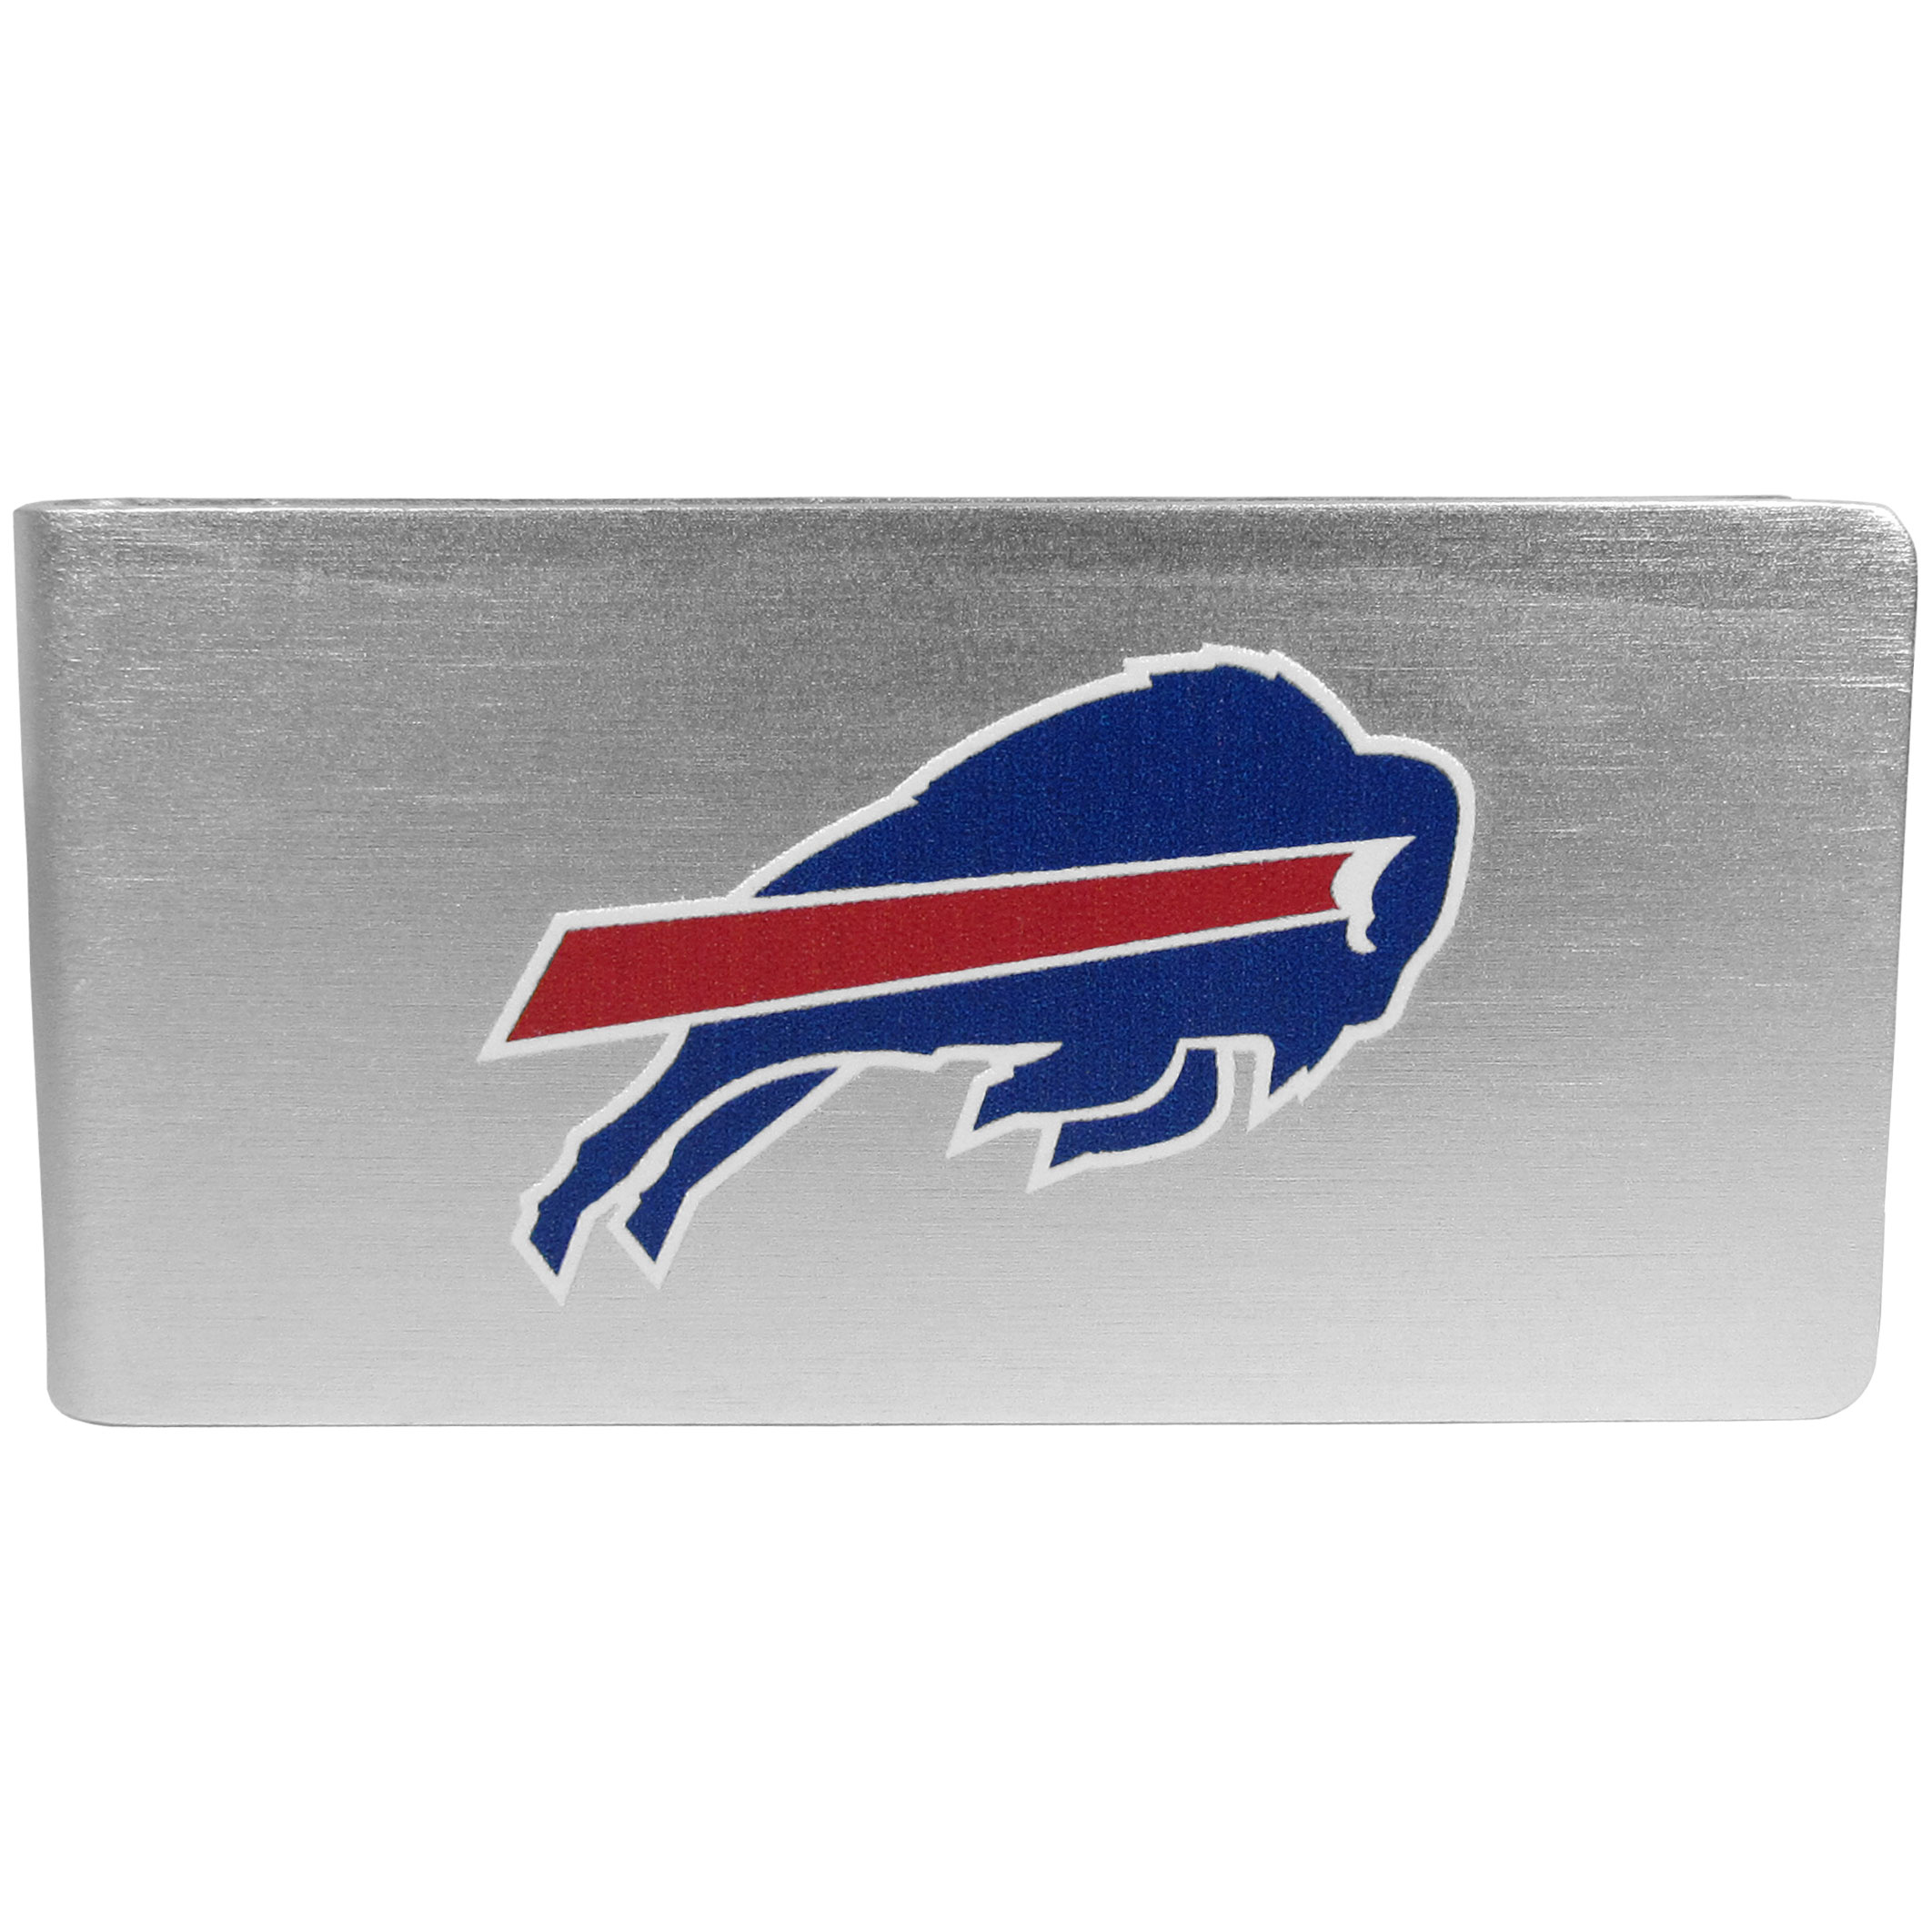 Buffalo Bills Logo Money Clip - Our brushed metal money clip has classic style and functionality. The attractive clip features the Buffalo Bills logo expertly printed on front.